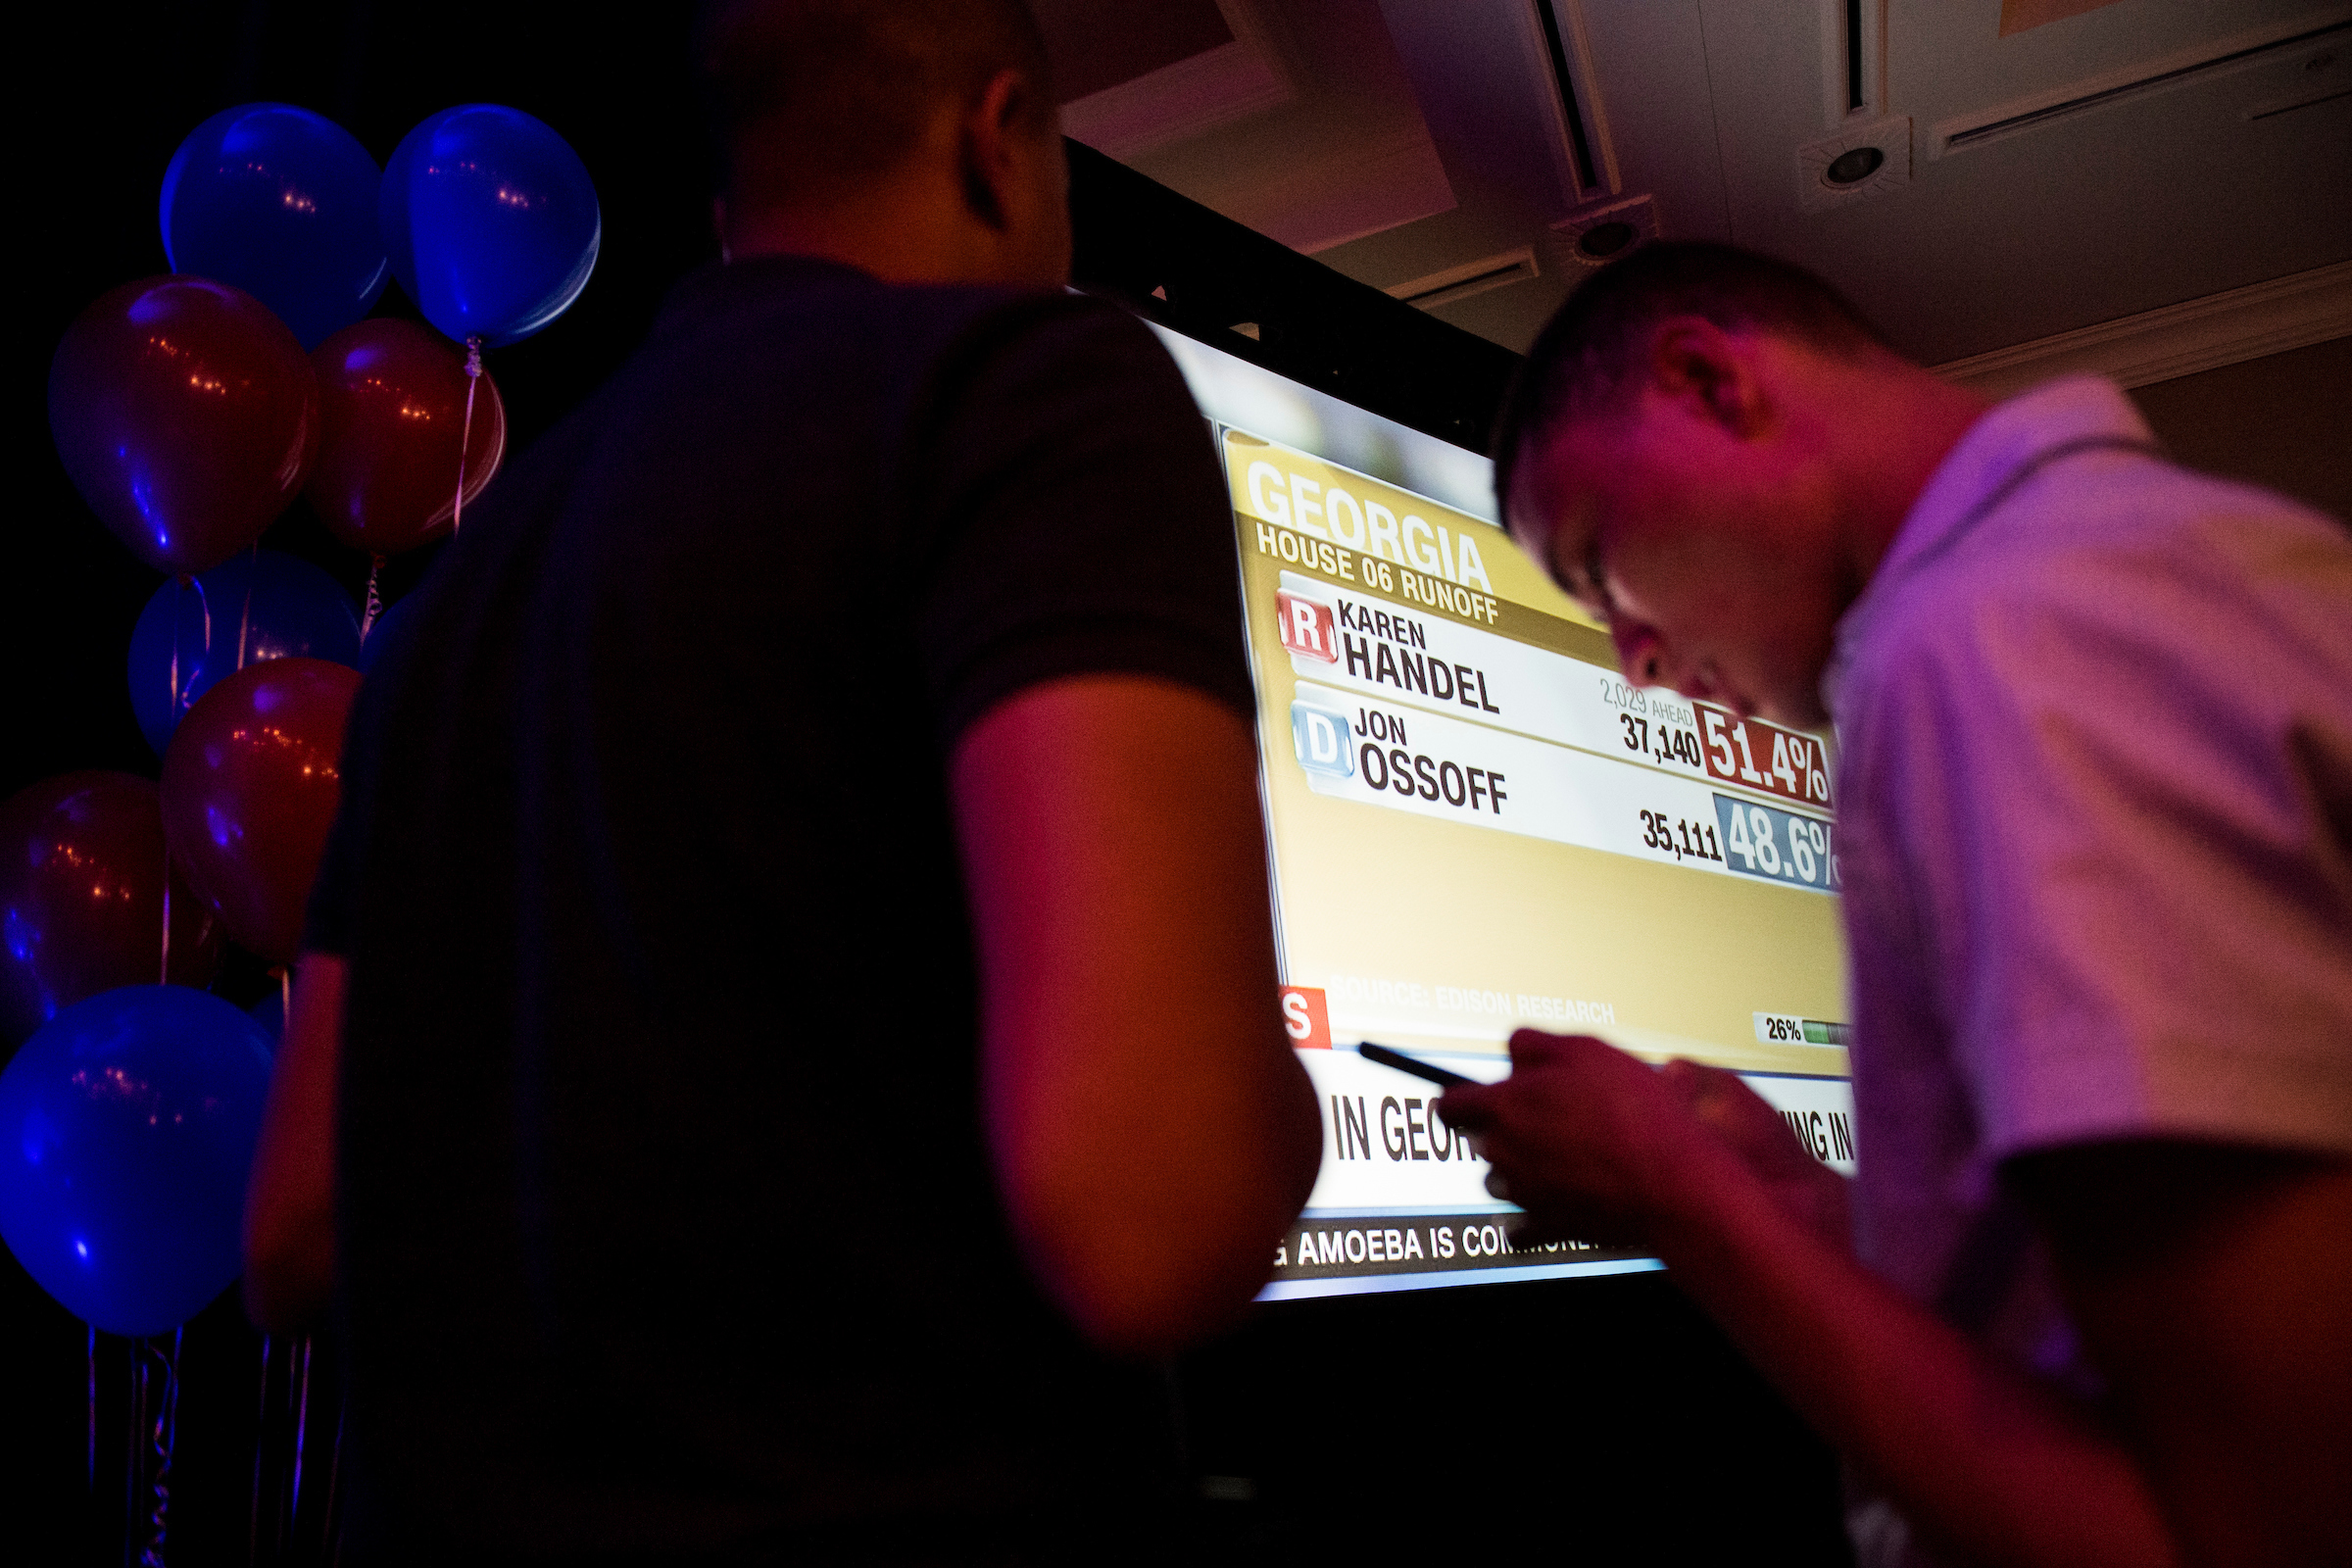 Ossoff supporters check their phones for early results at Ossoff's election night watch party in Atlanta, Ga., on special election day. (Bill Clark/CQ Roll Call)